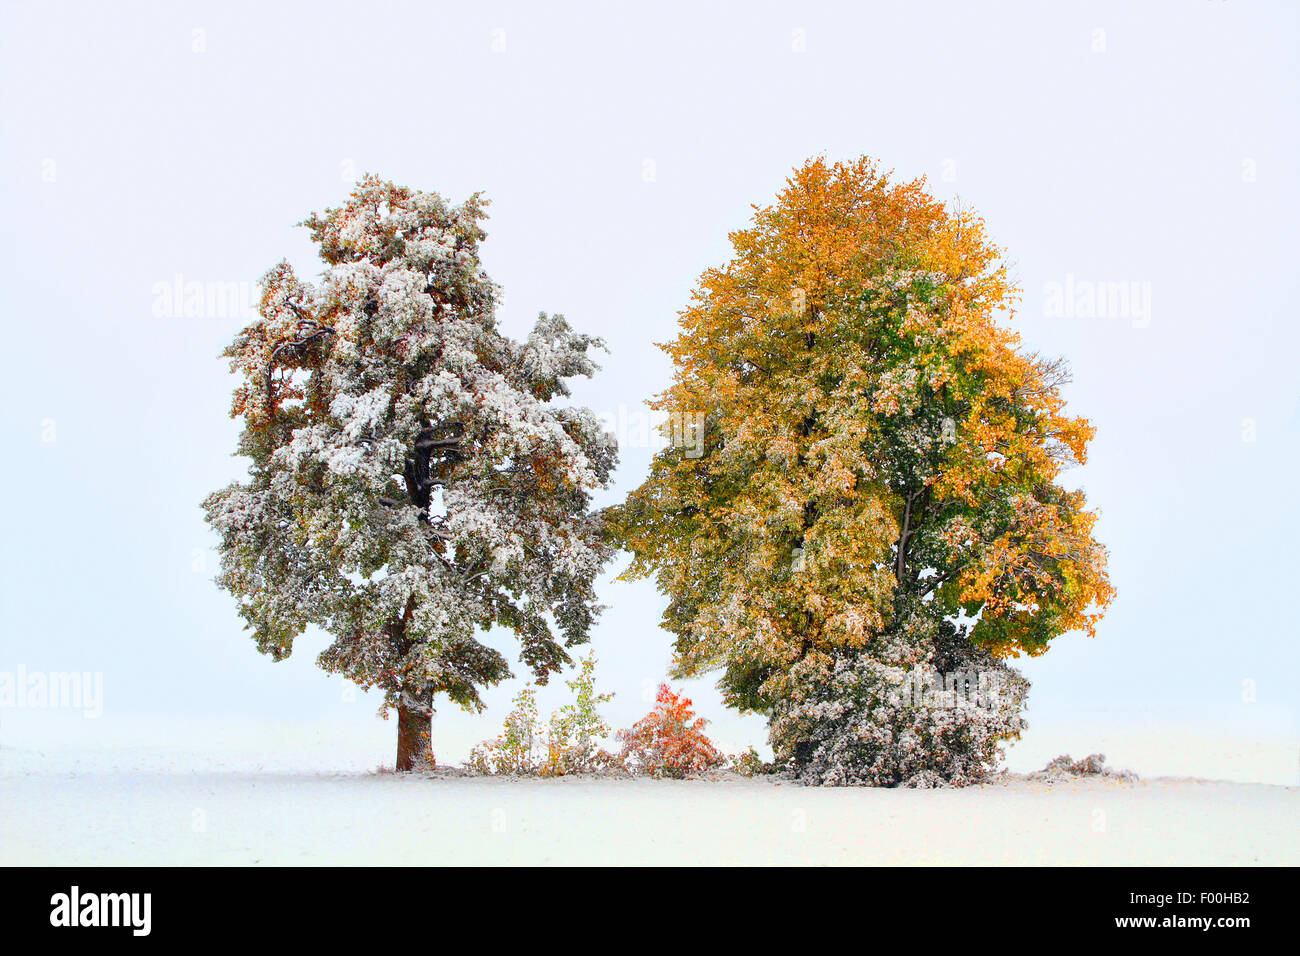 autumn trees in first snow, october, Germany - Stock Image